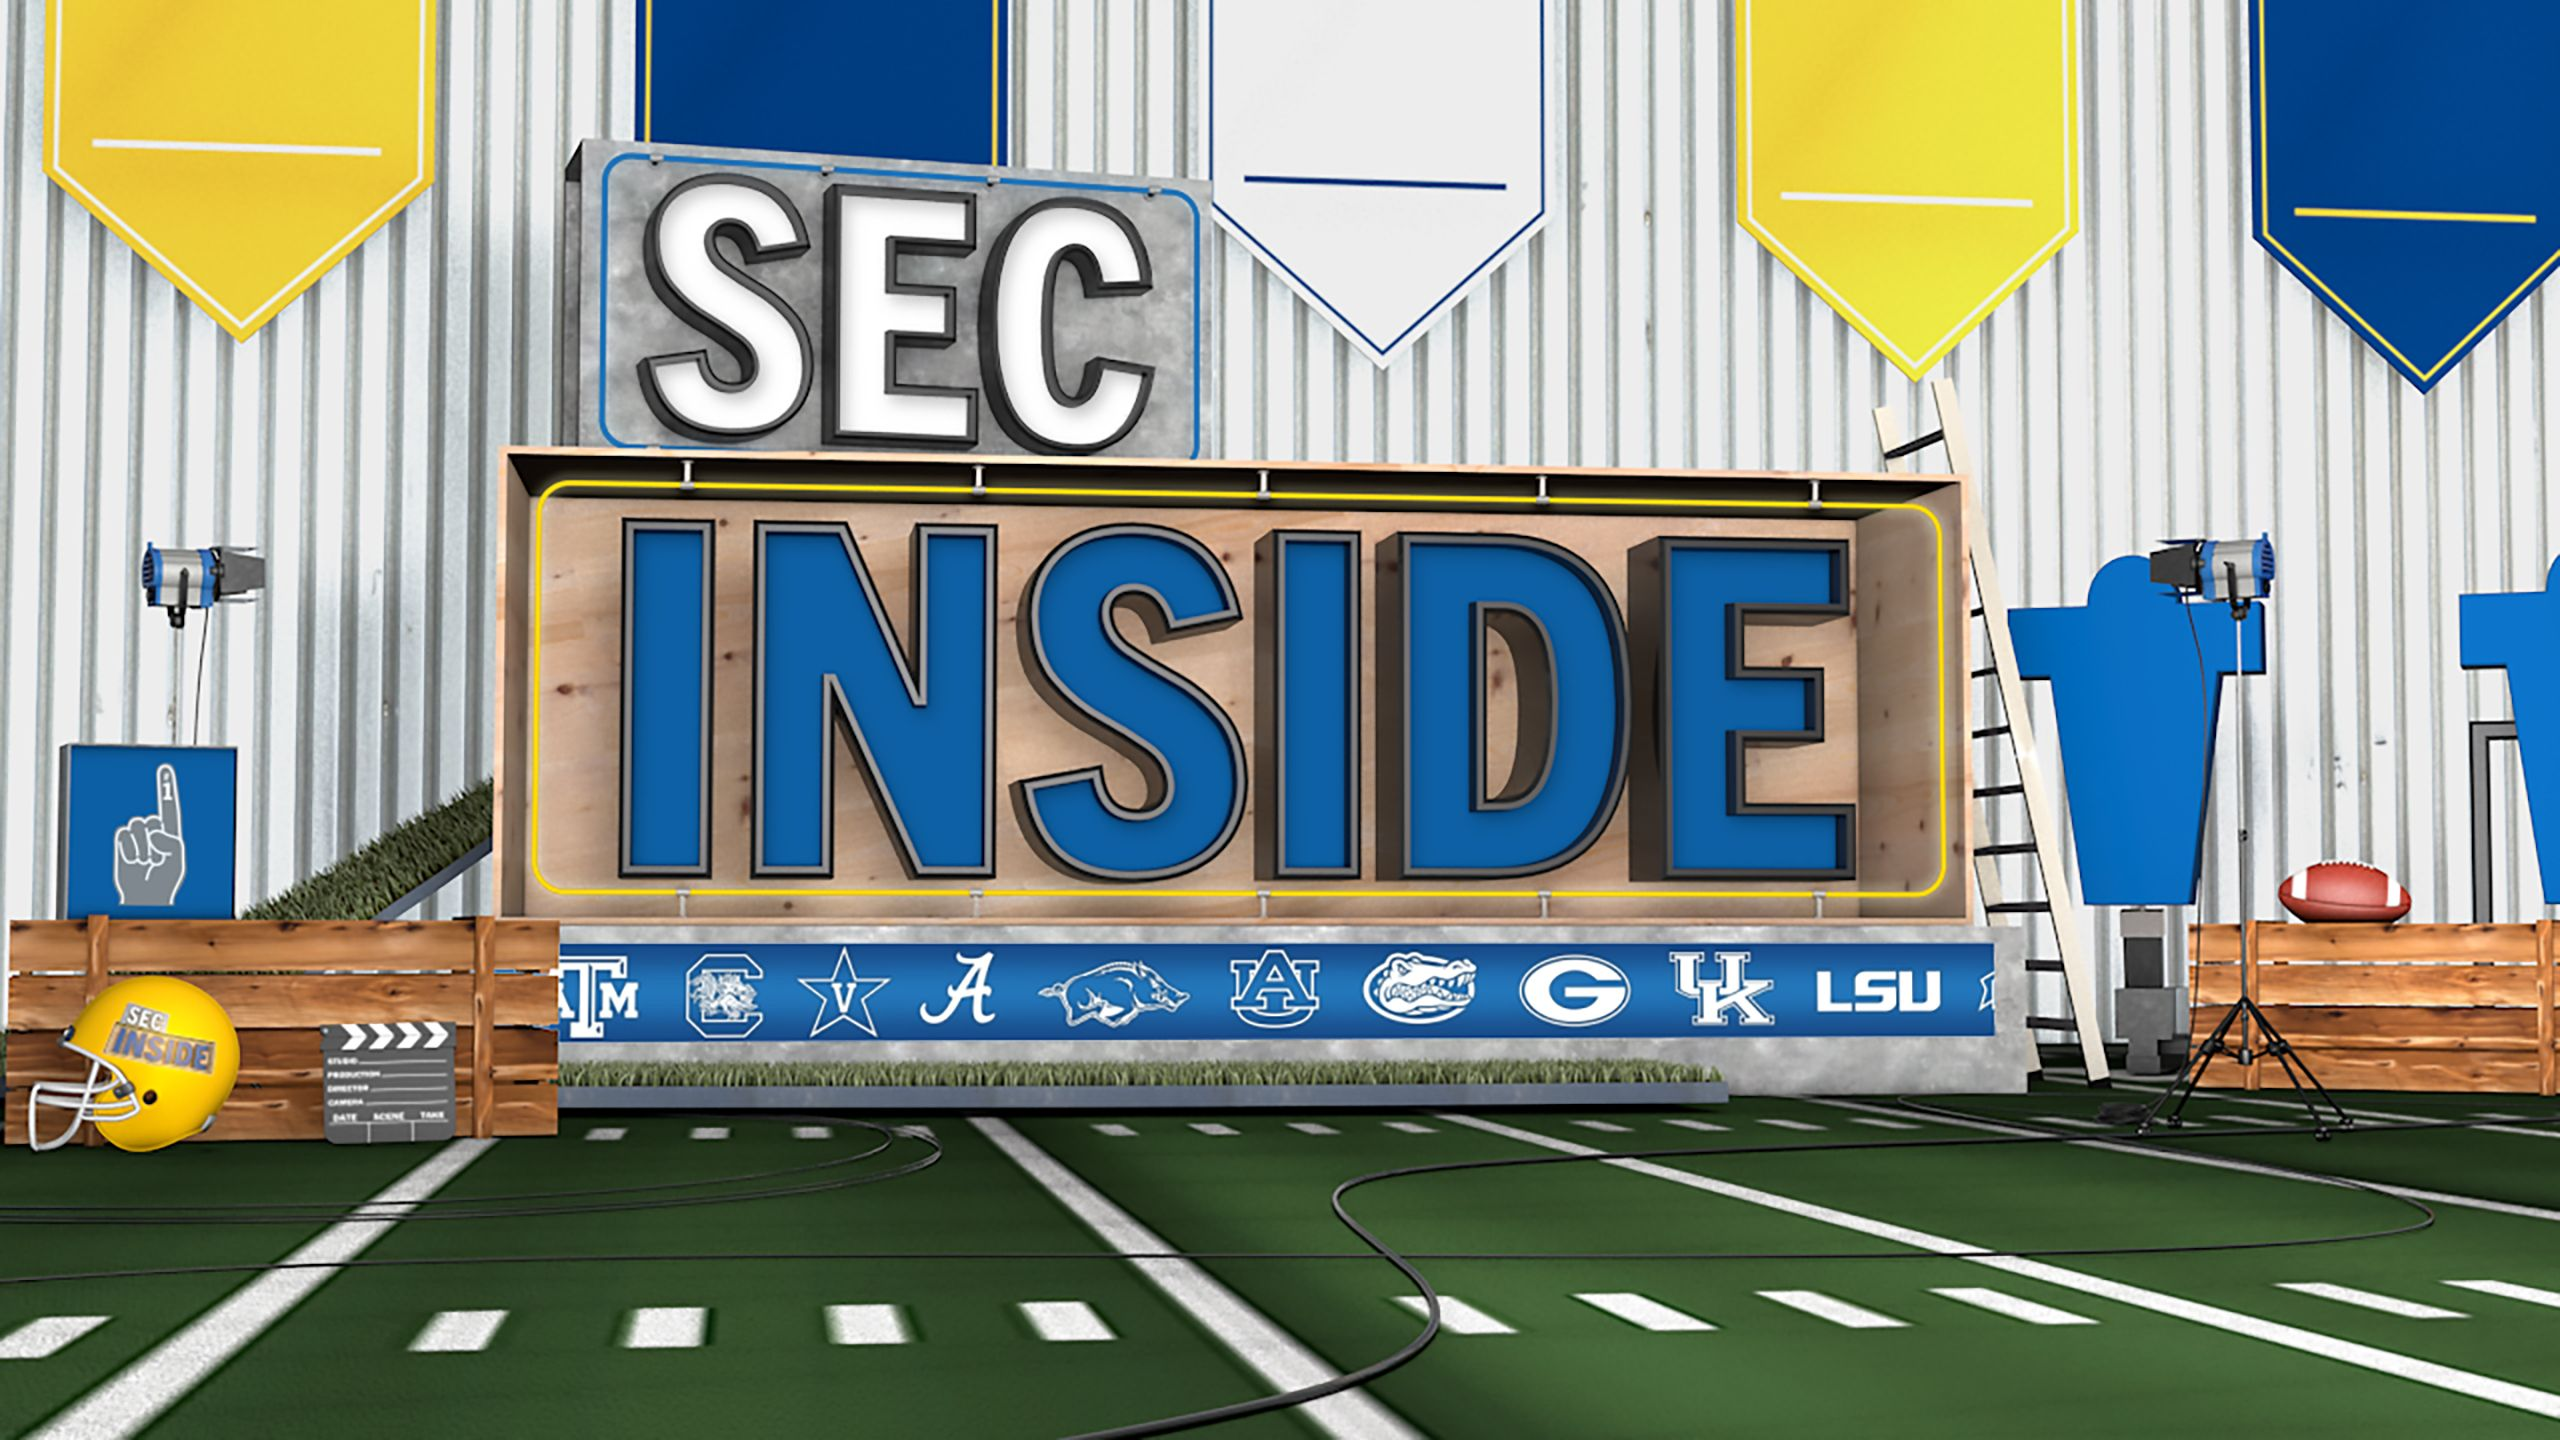 SEC Inside: Kentucky vs. Mississippi State